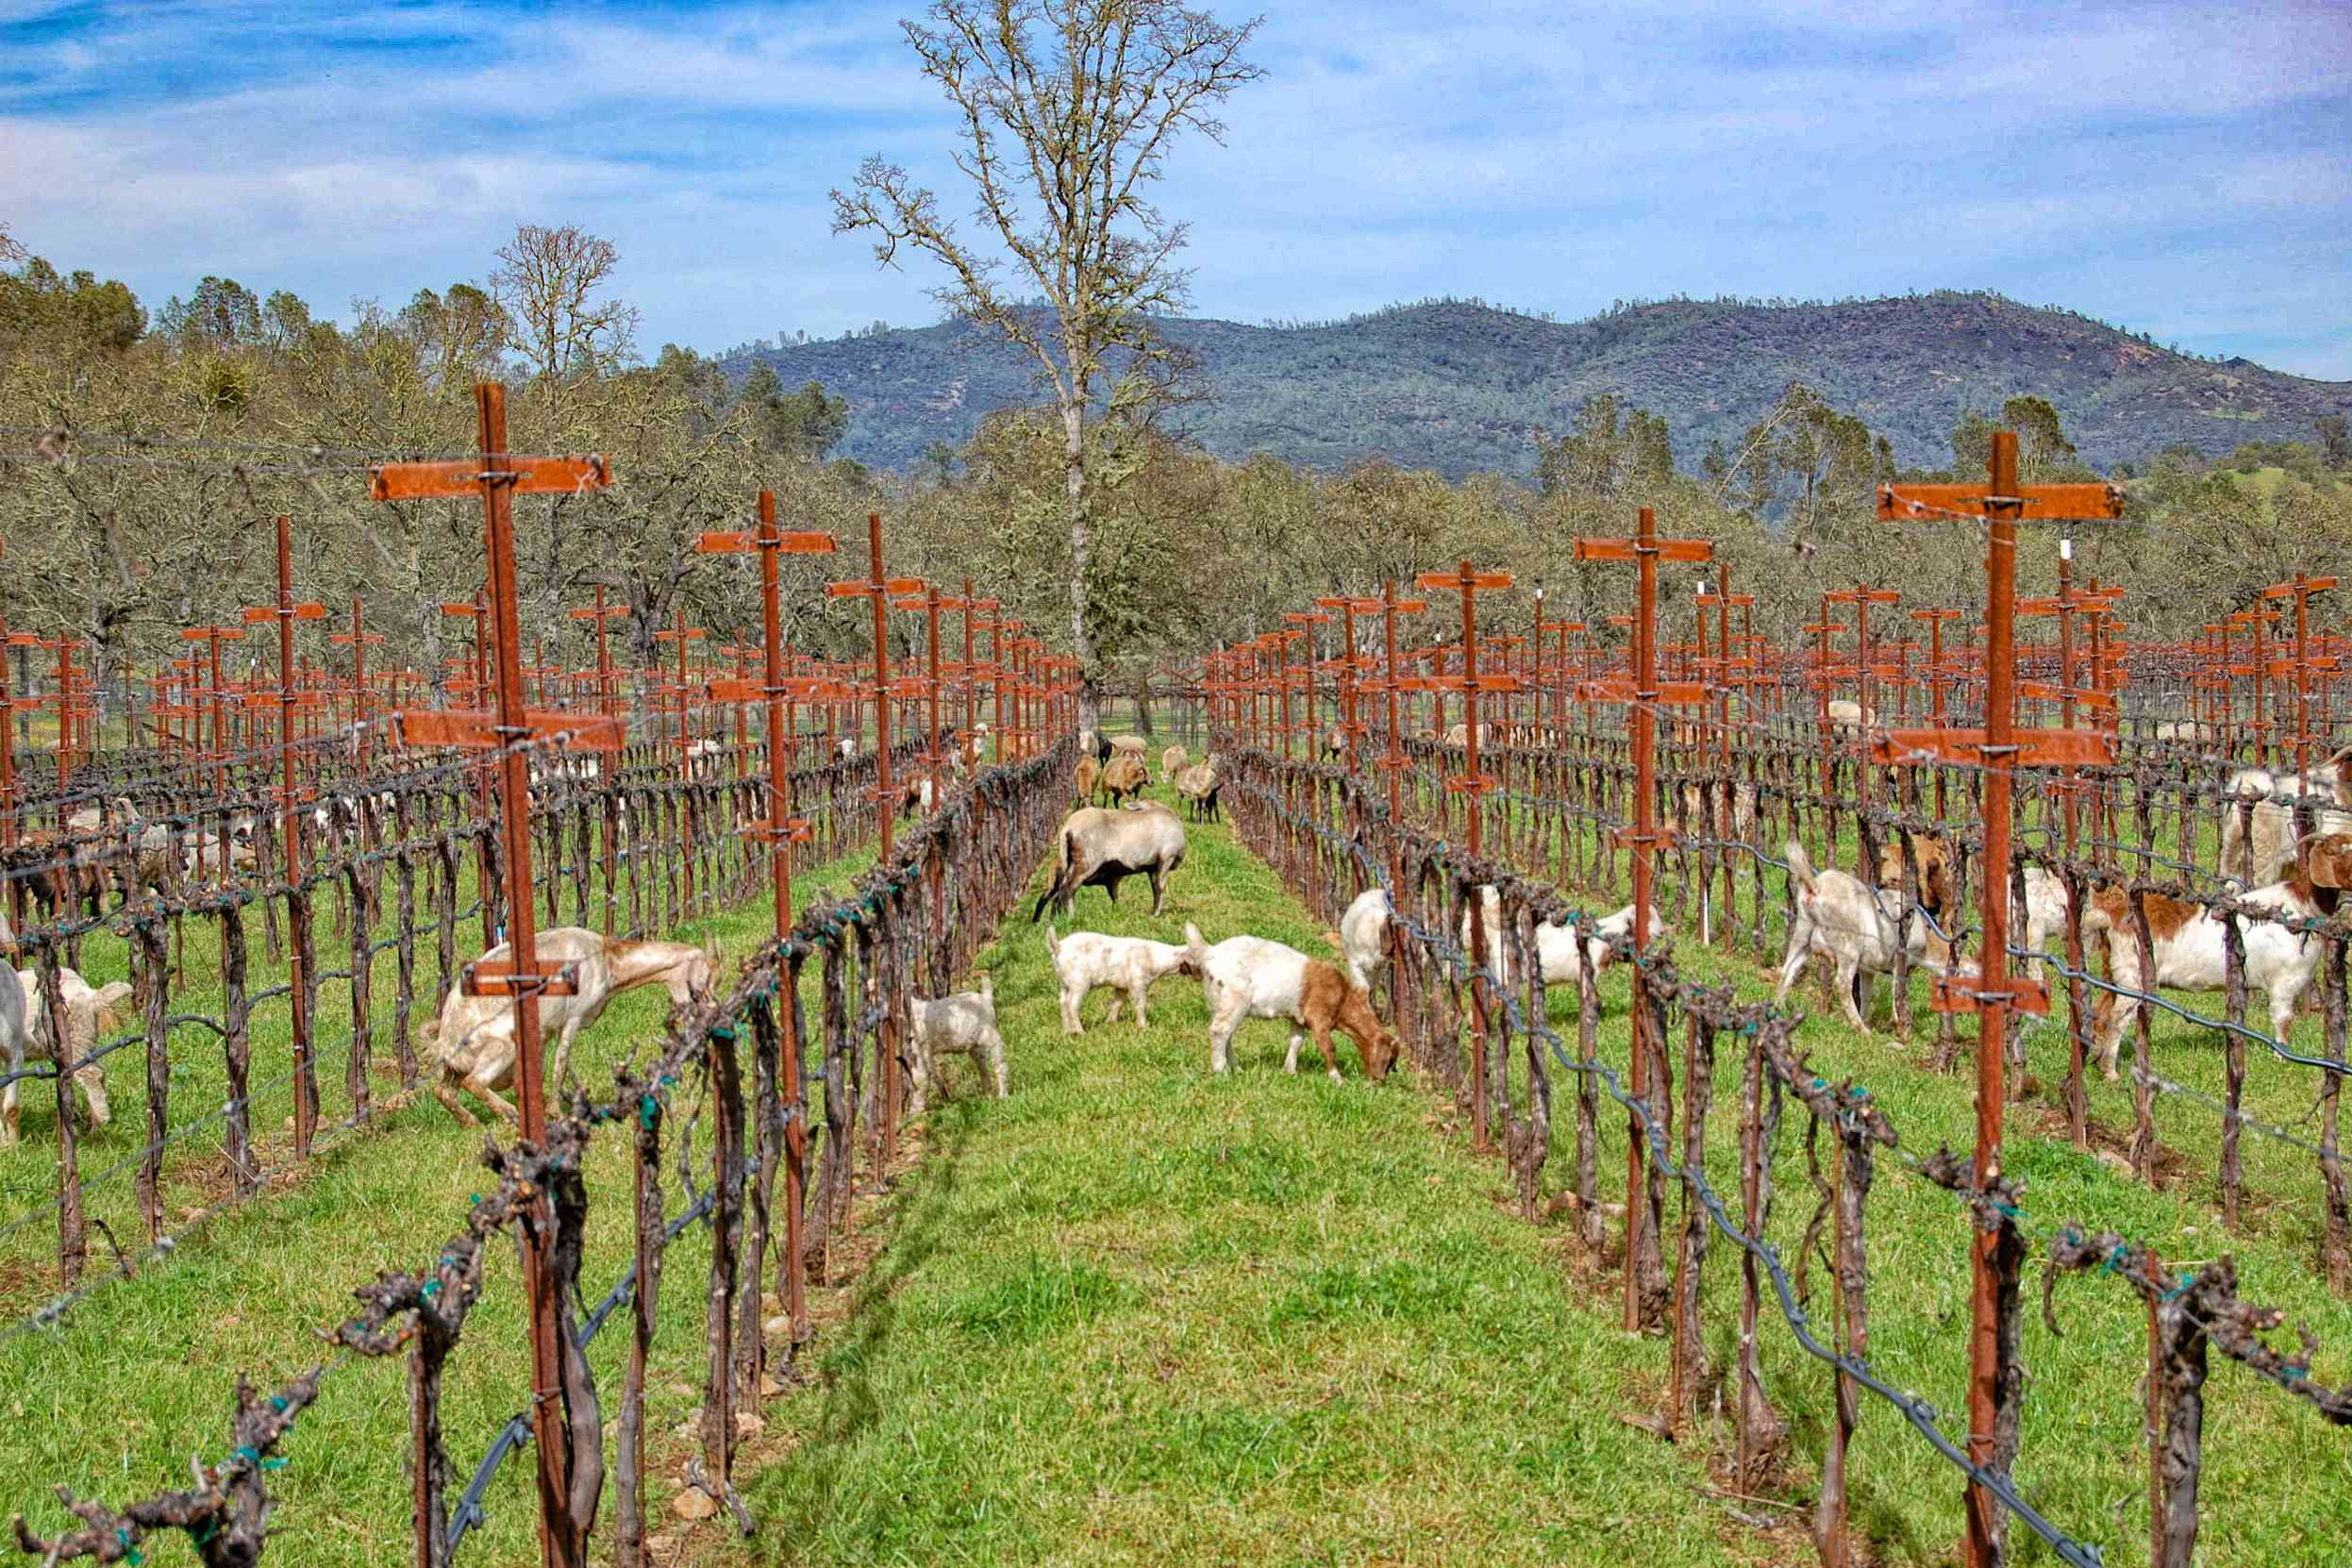 Sheep Grazing in the Vineyard at Heibel Ranch